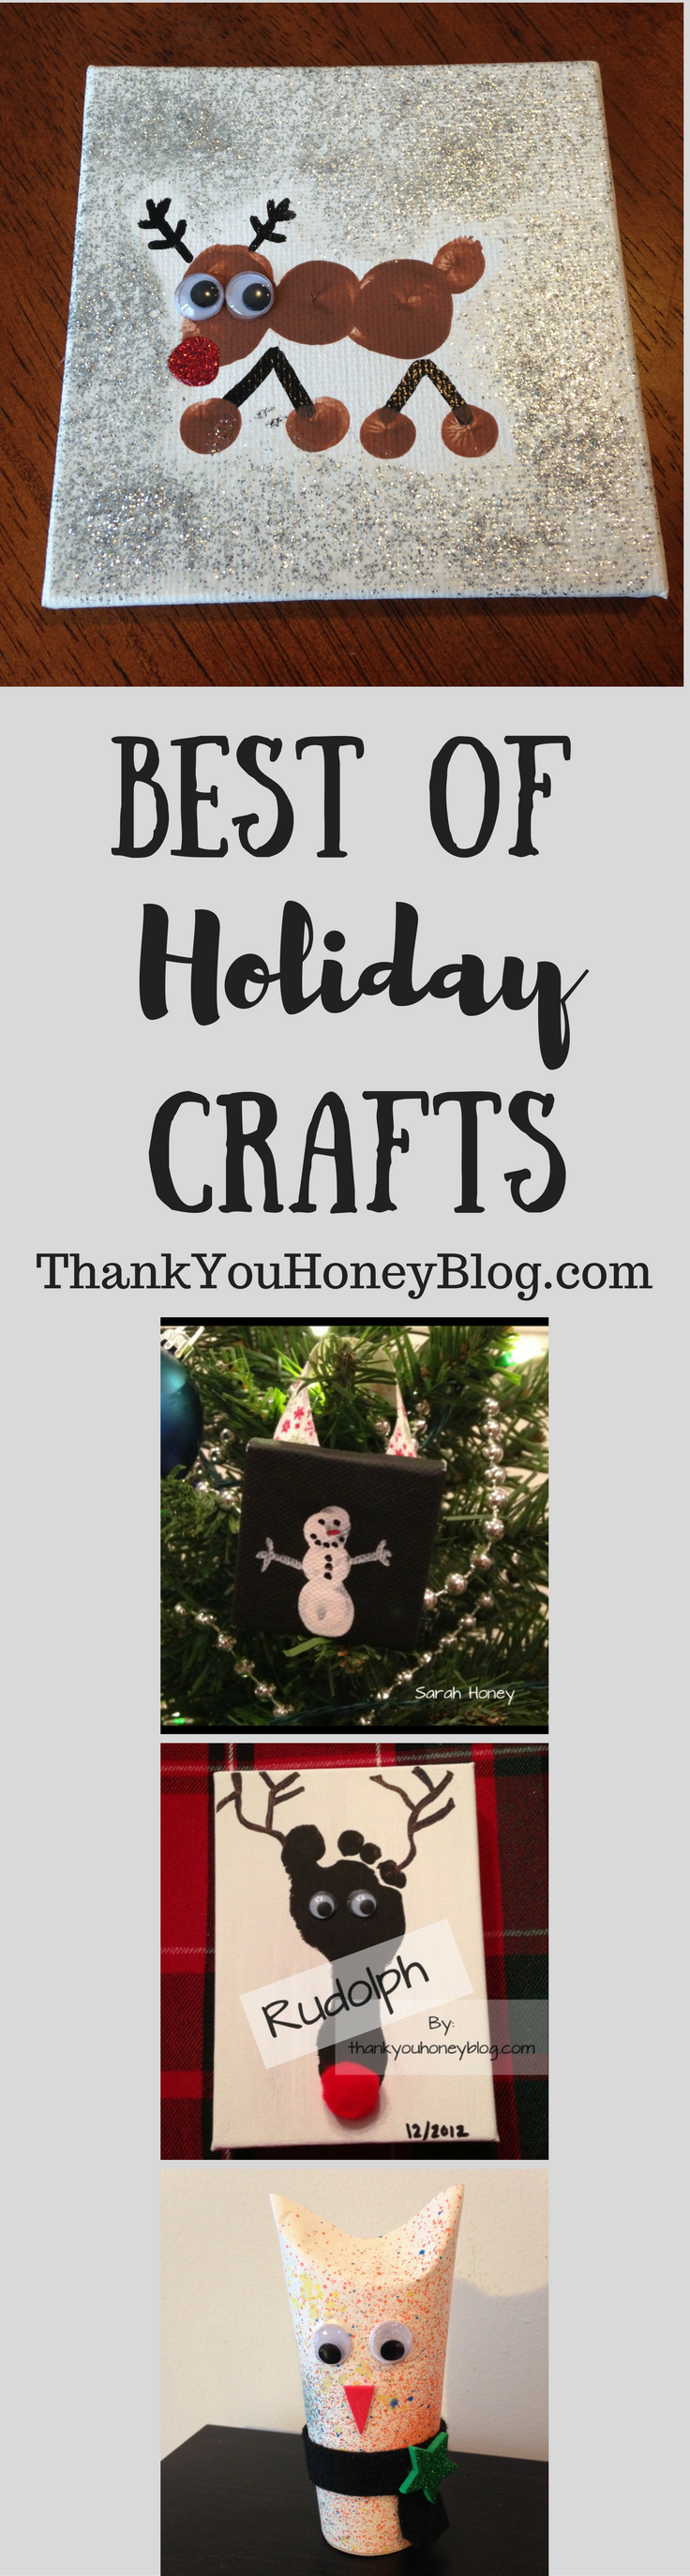 Best of Holiday Crafts